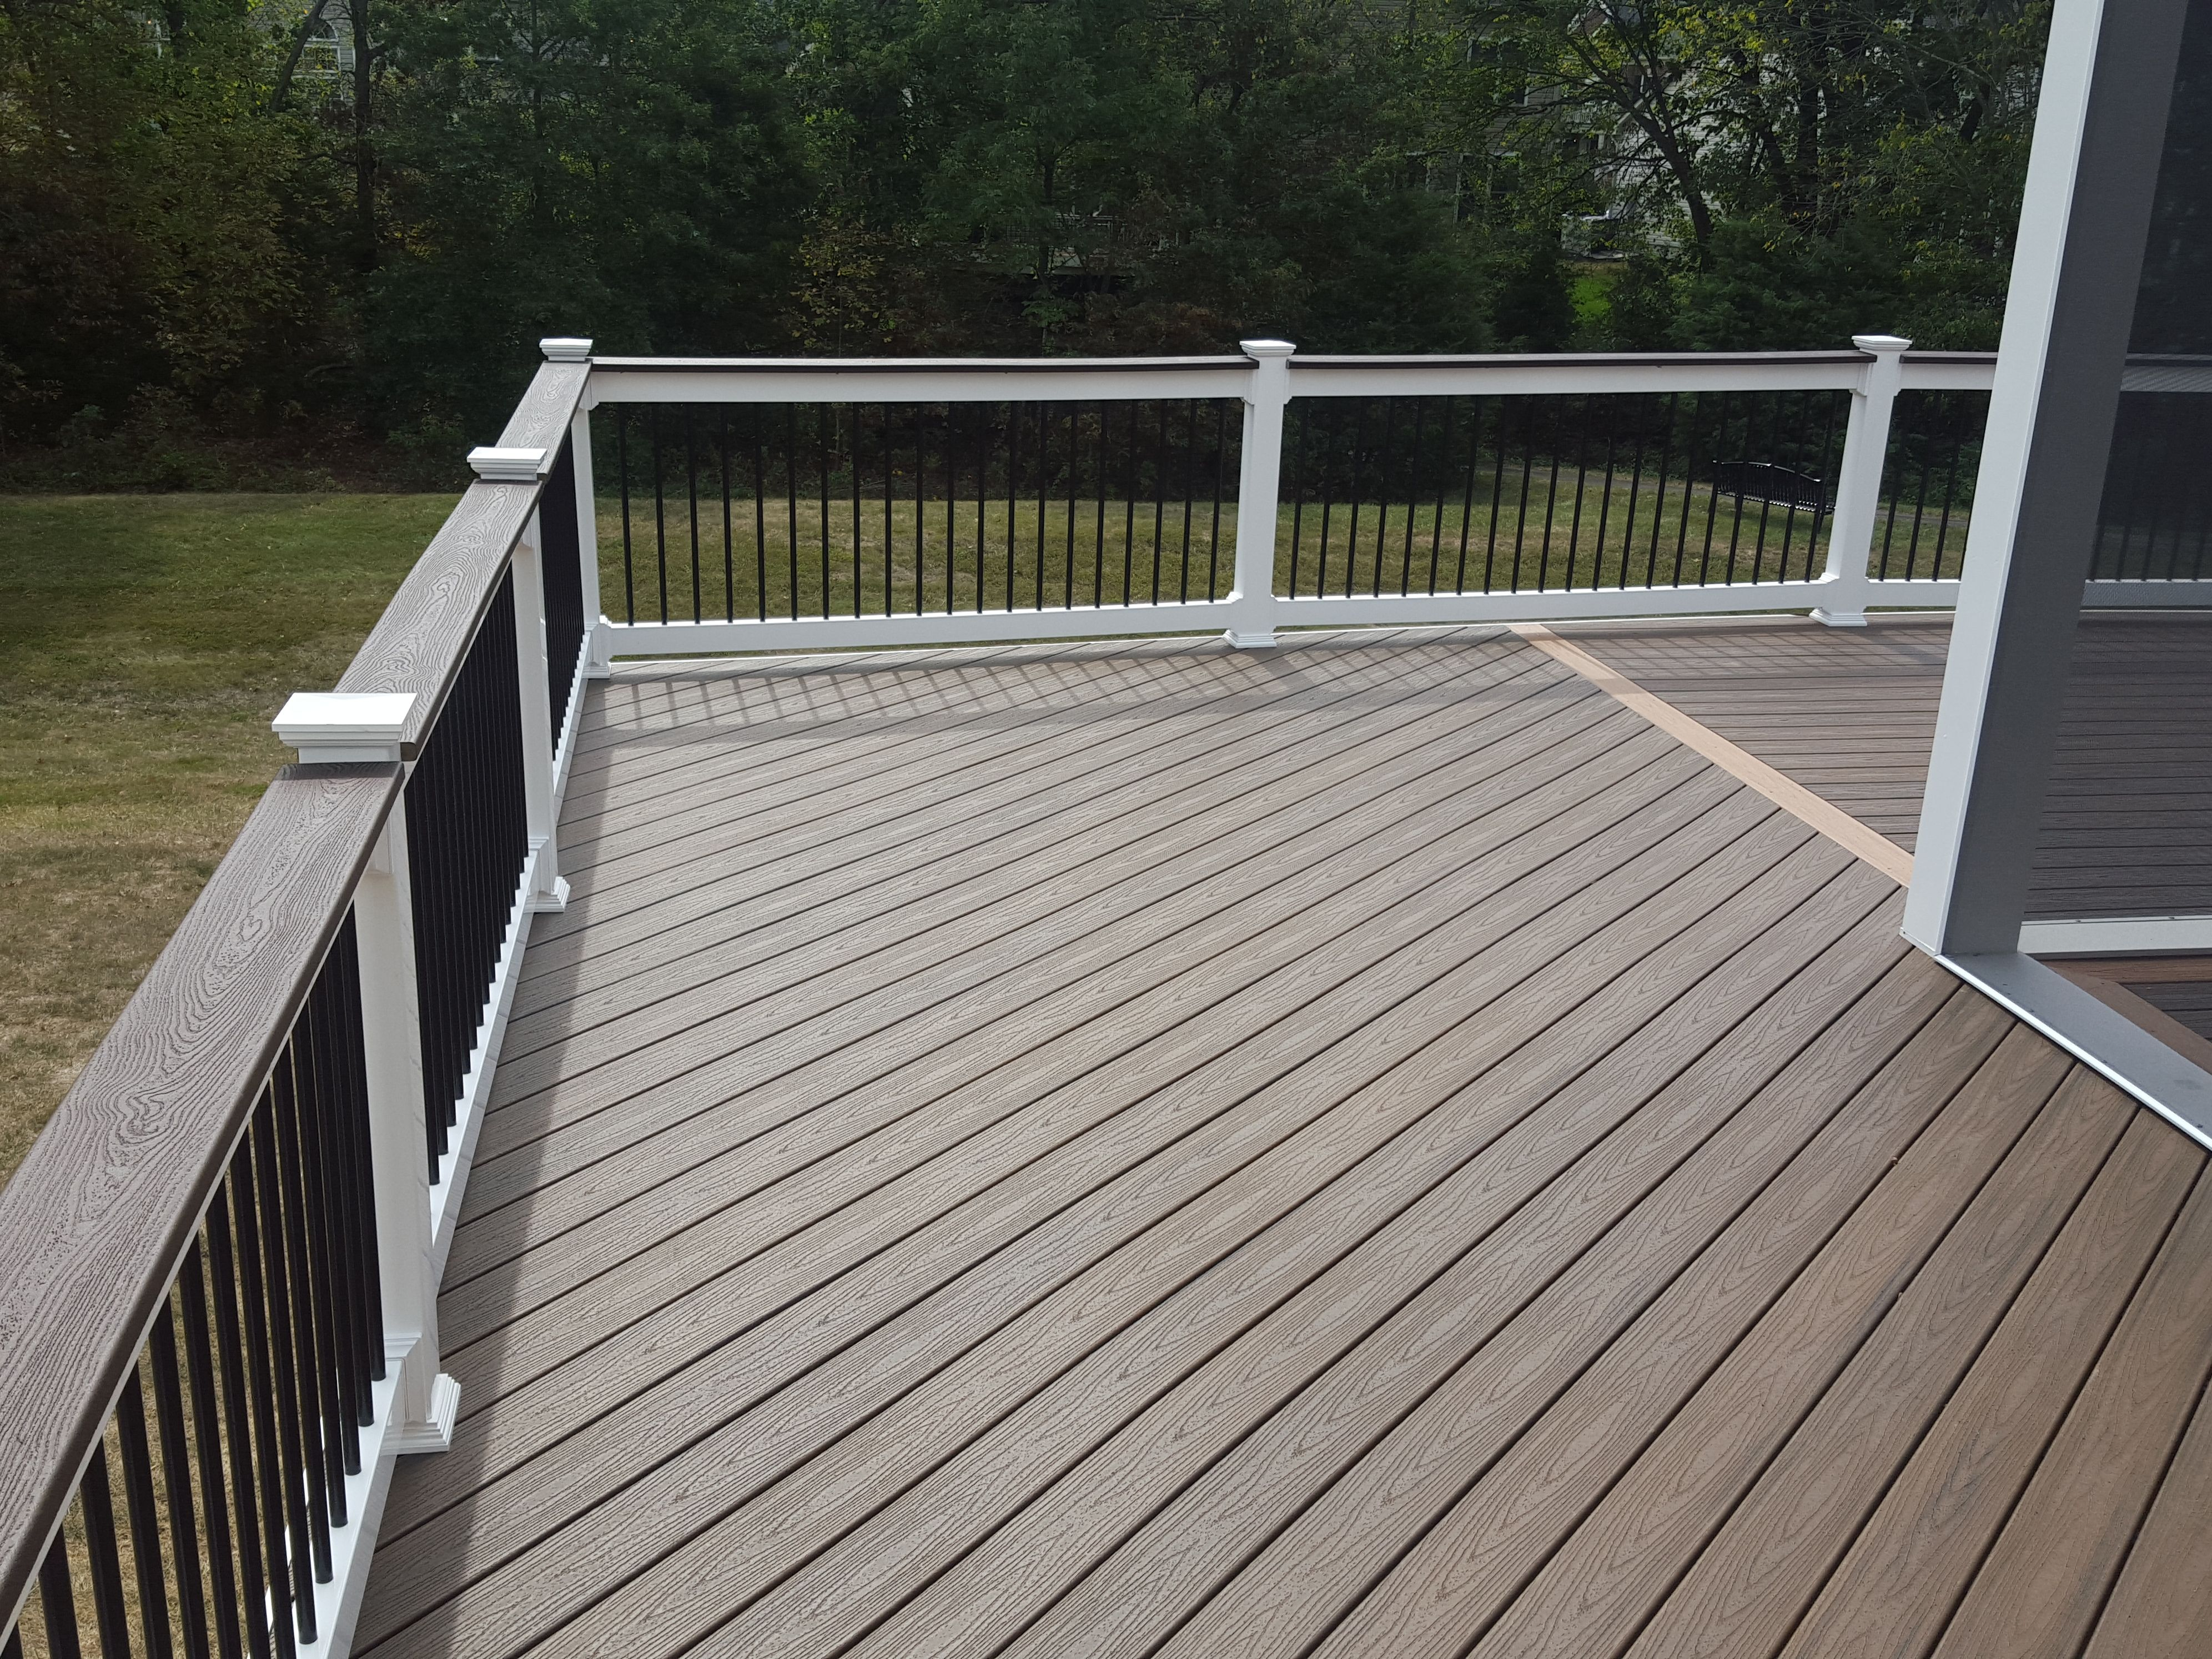 This Deck Has Trex Decking Trex Handrails Vinyl Railings And Black Aluminum Balusters In Chantilly I Like Color Patio Builders Backyard Plan Vinyl Railing